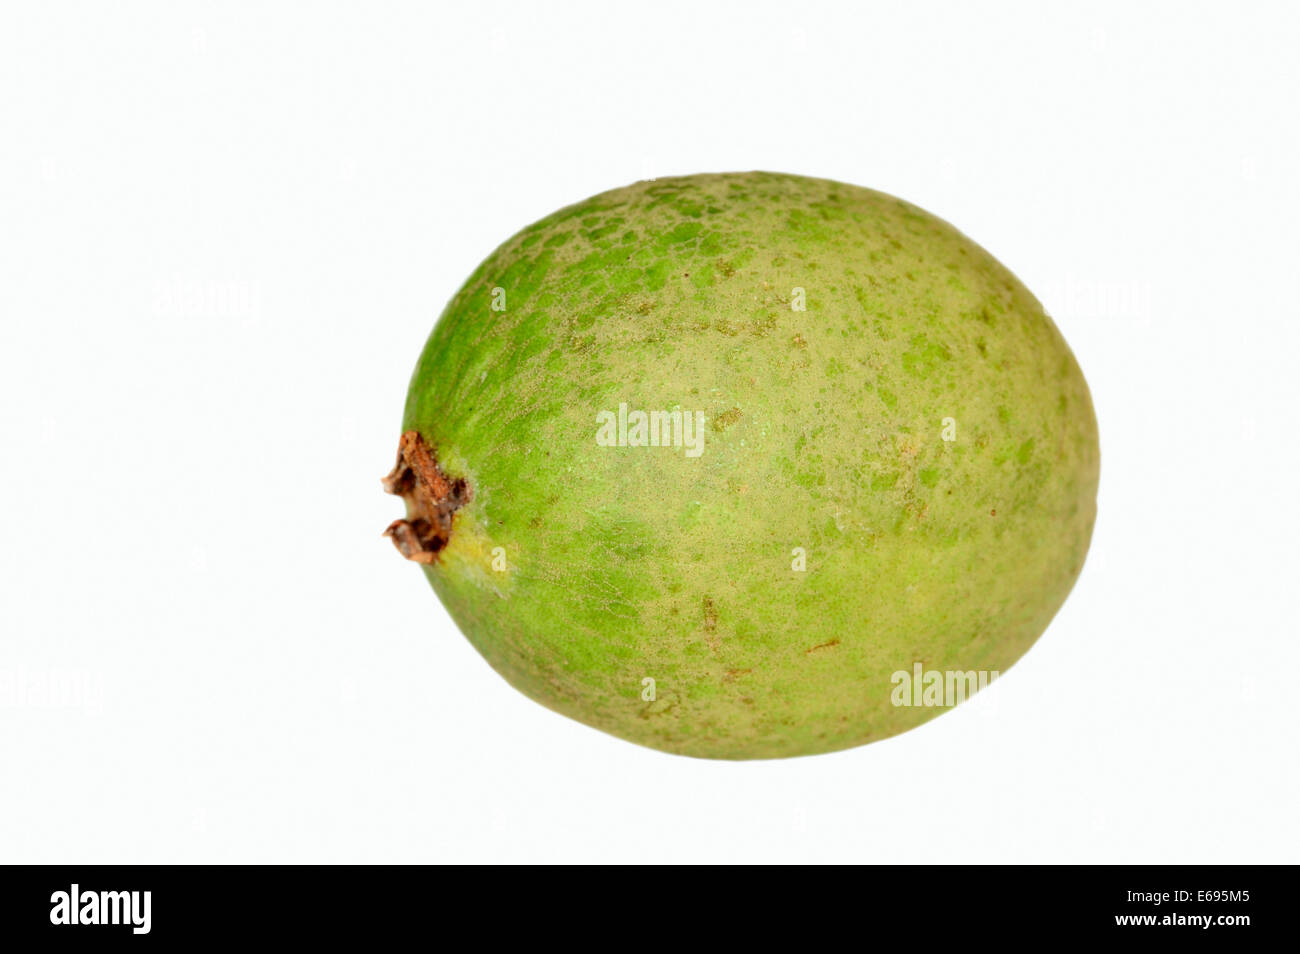 apple guava Find apple guava stock images in hd and millions of other royalty-free stock  photos, illustrations, and vectors in the shutterstock collection thousands of new .